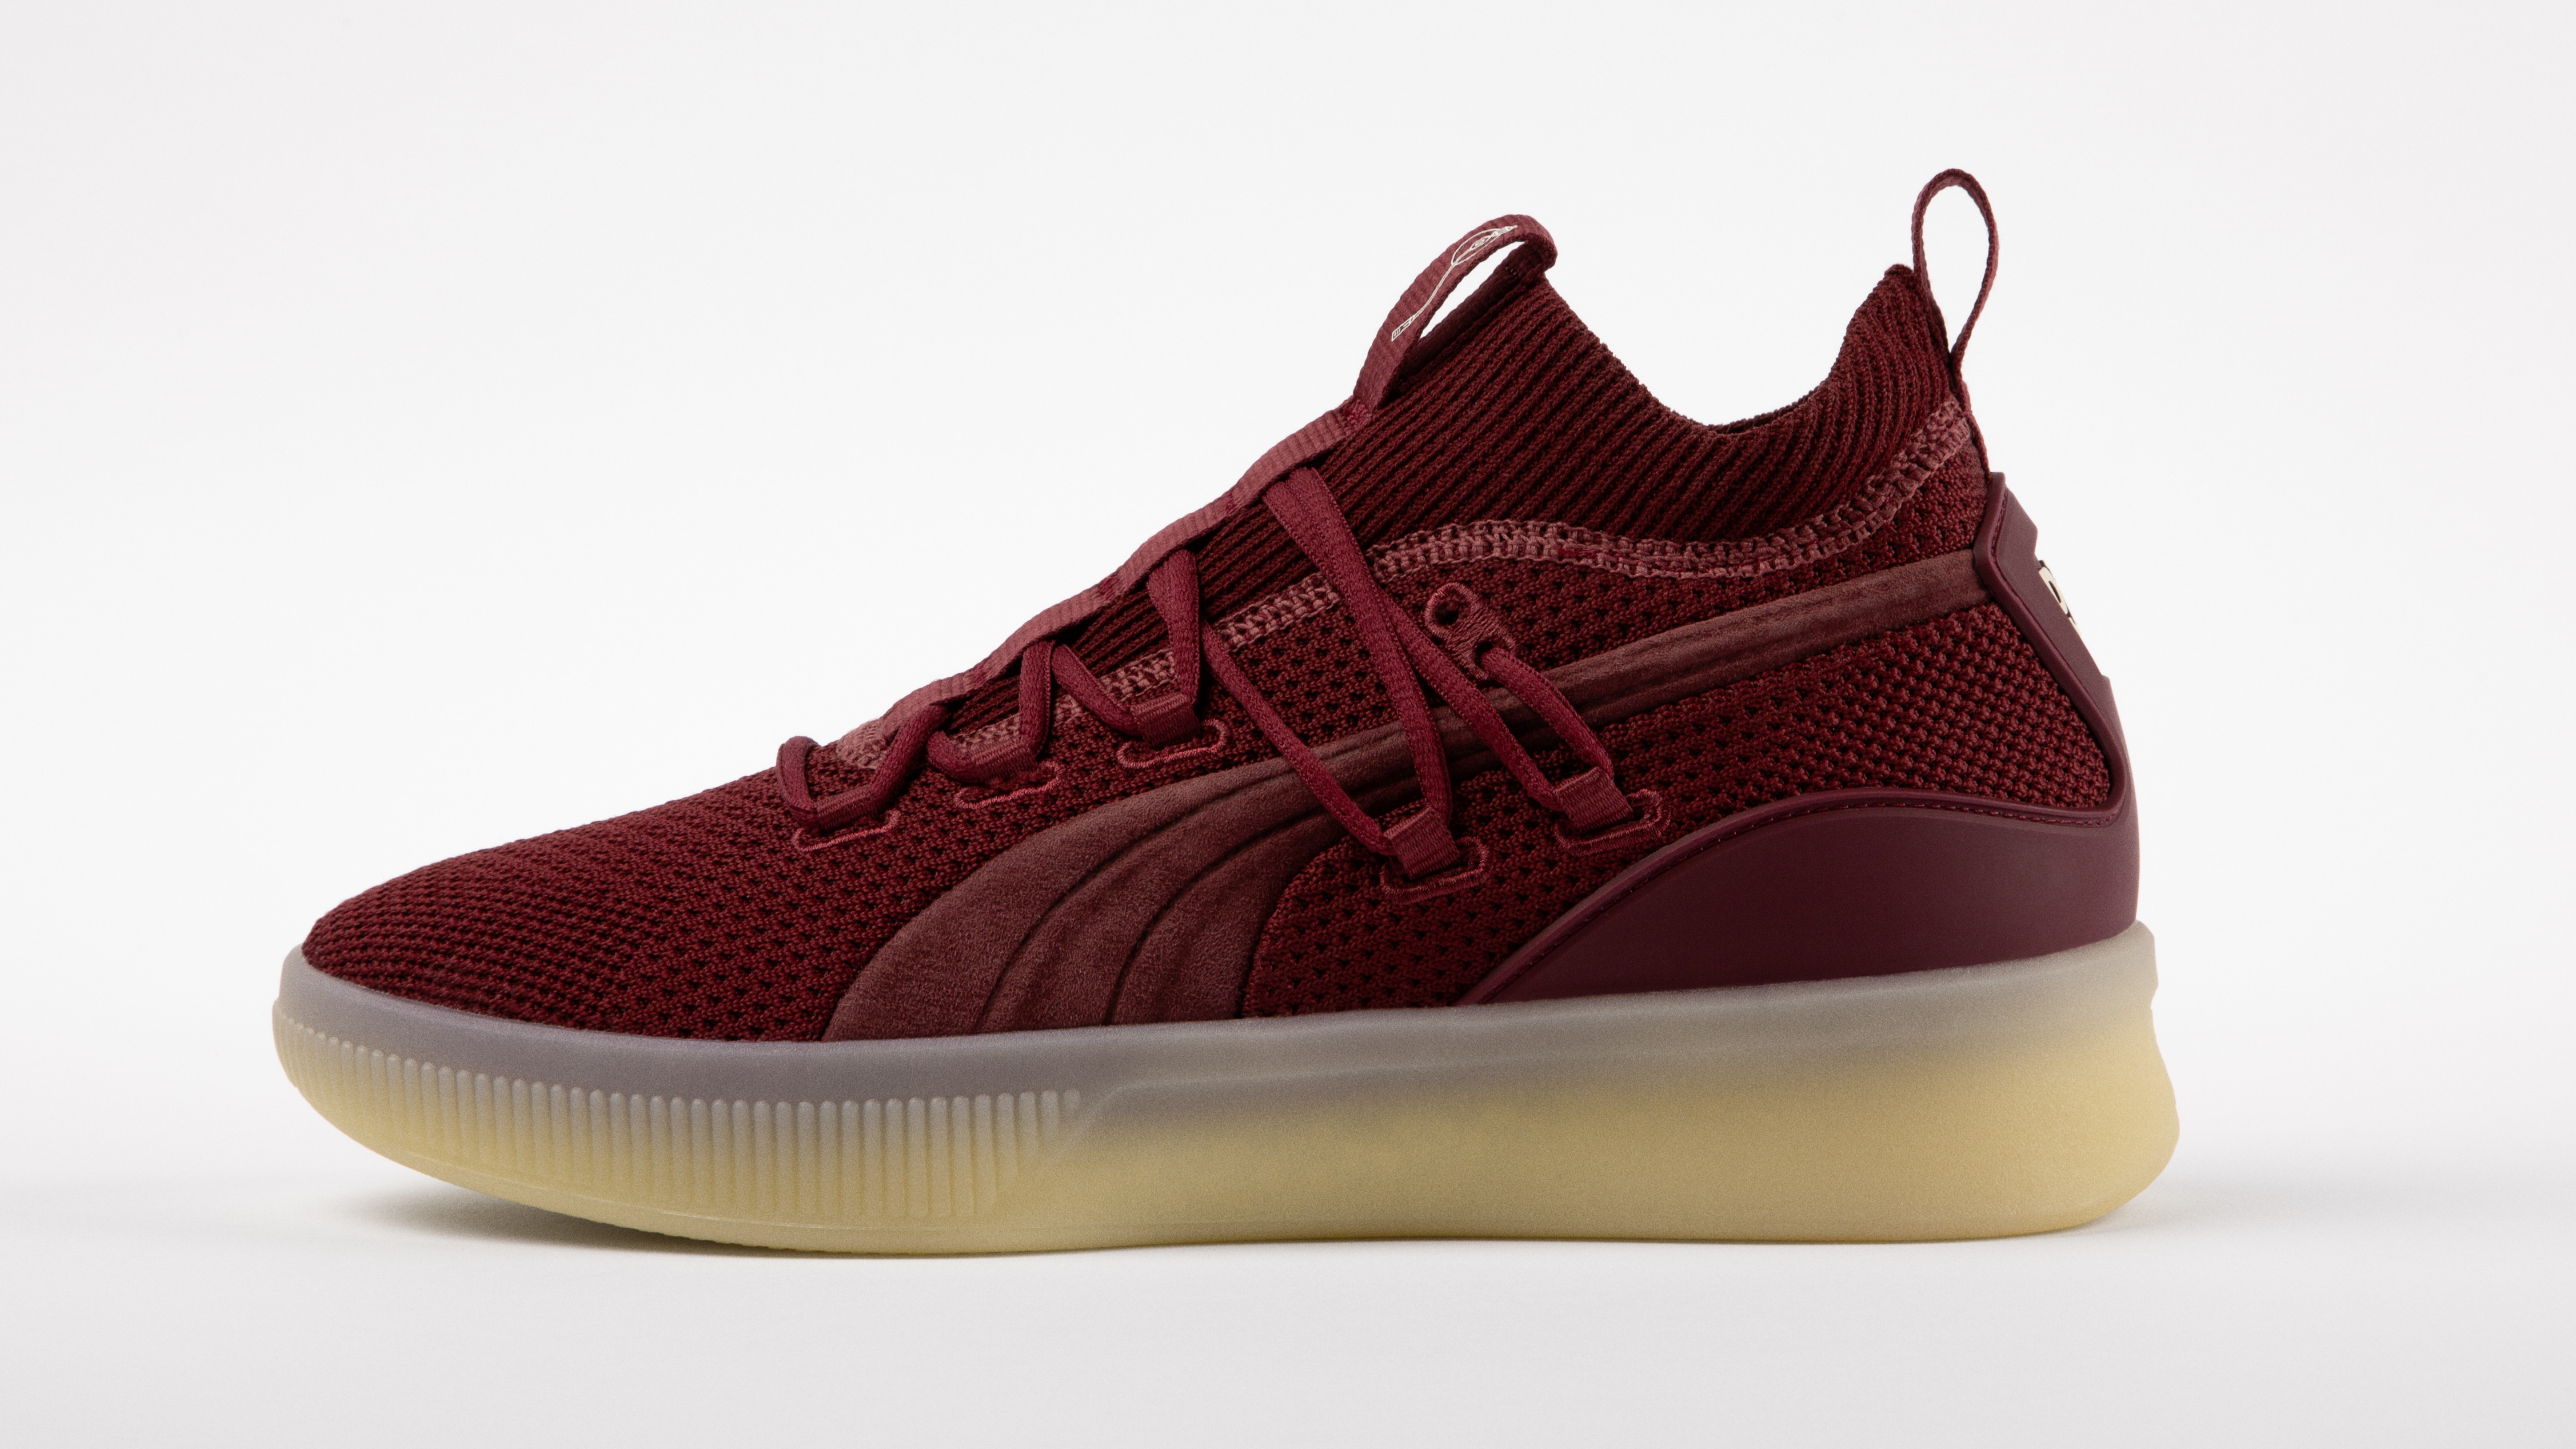 Puma Celebrates Def Jam's 35th Anniversary With a Special Clyde Court